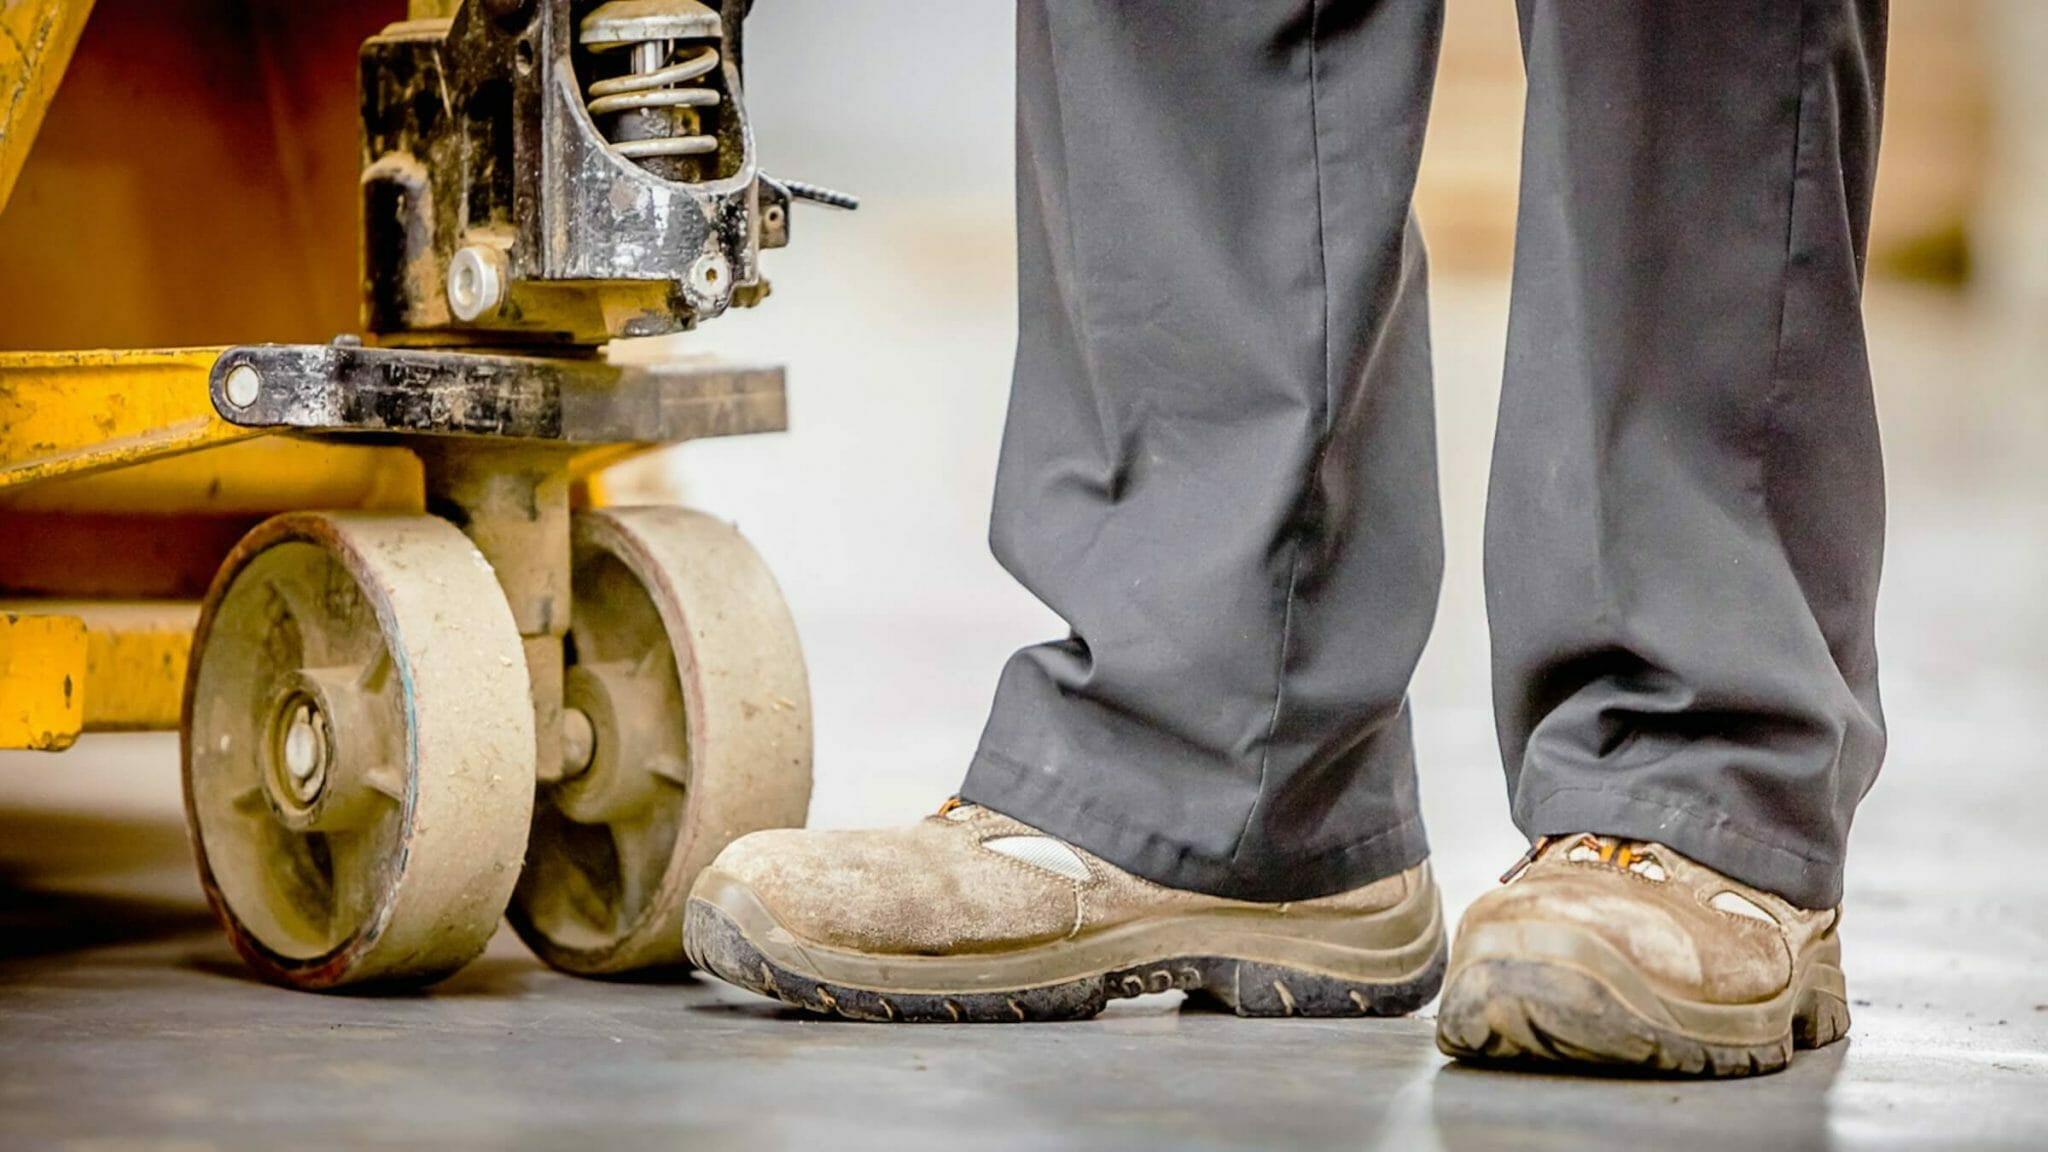 Worker with composite toe safety boots in warehouse with heavy equipment